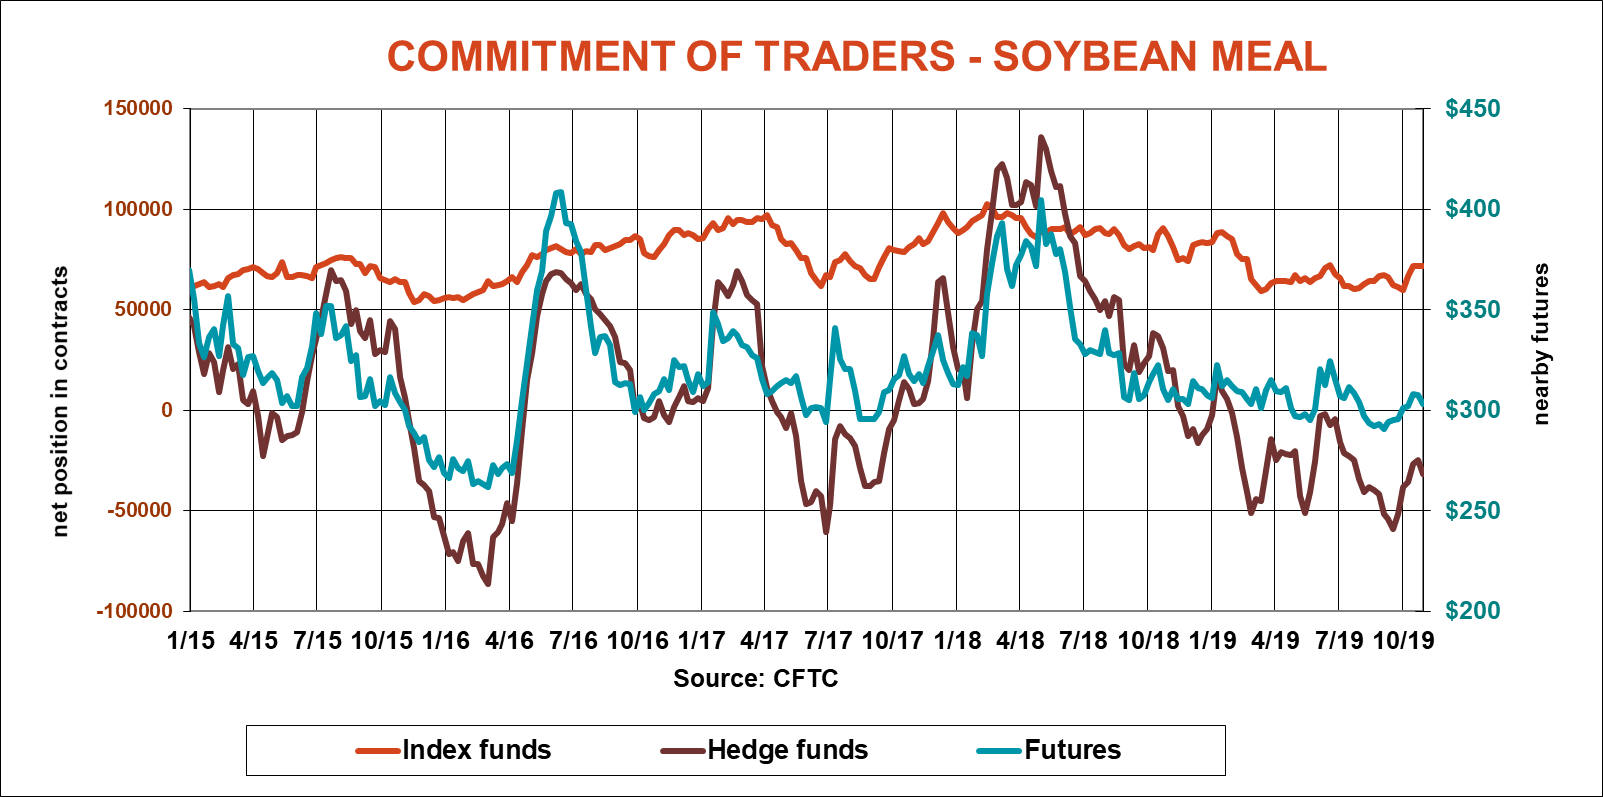 commitment-of-traders-soybean-meal-cftc-110119.png